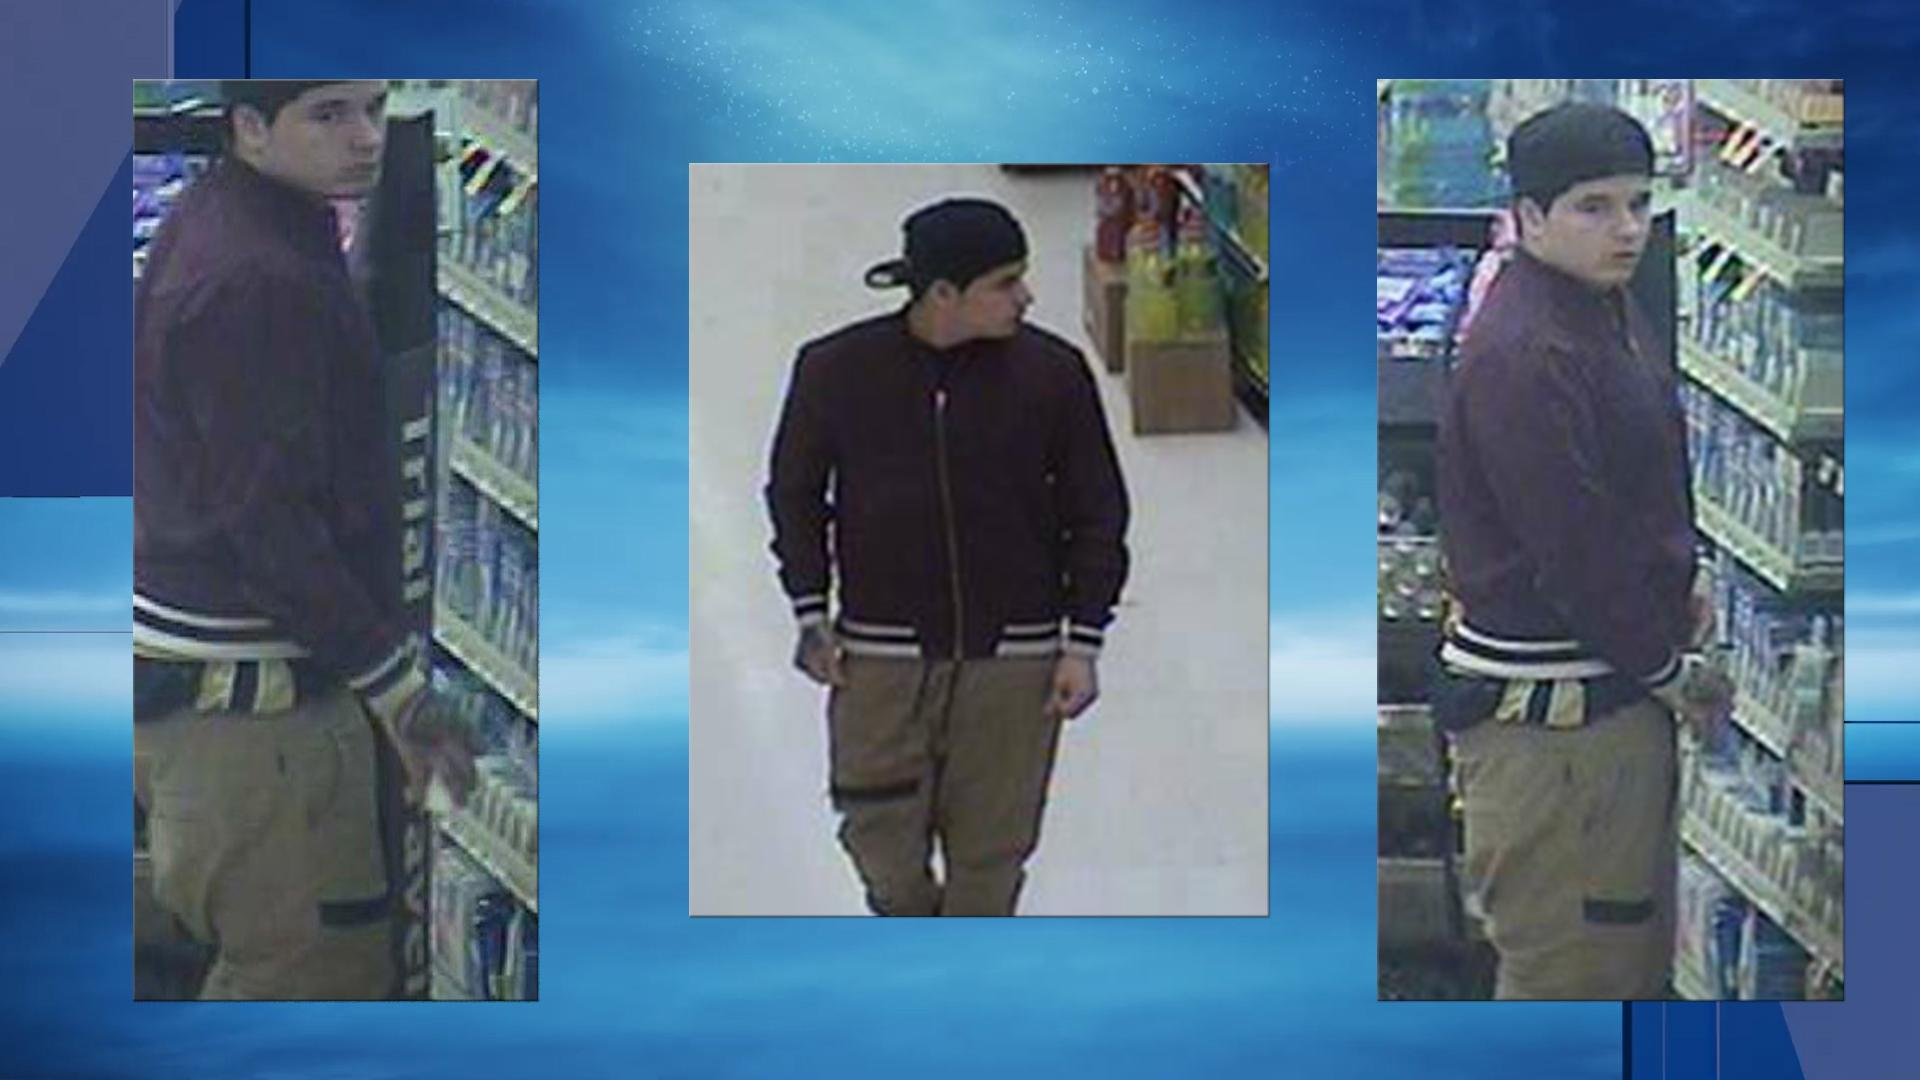 The Cranston Police Department is asking the public to help them identify a man who stole more than $100 of seafood and soda from a supermarket. (Police photos)